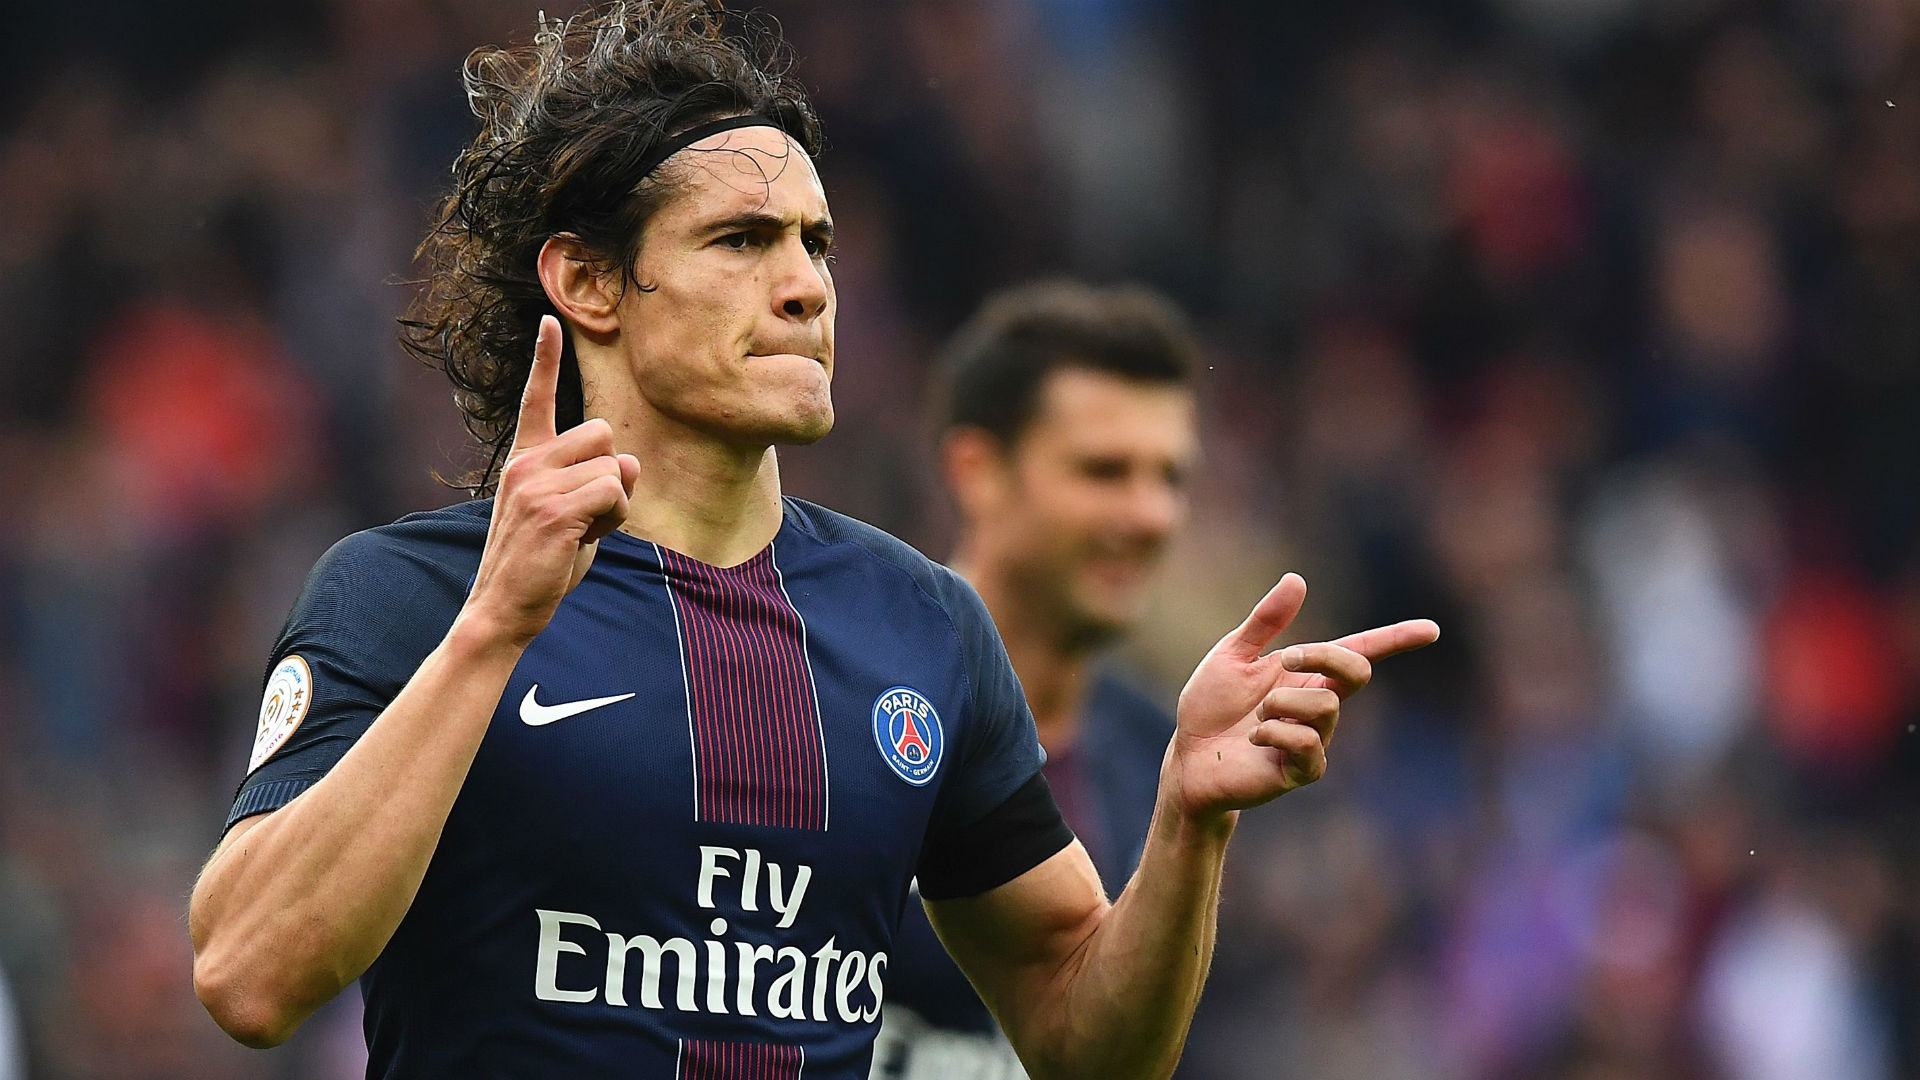 Top scorer Cavani extends Paris Saint-Germain 'love story' to 2020